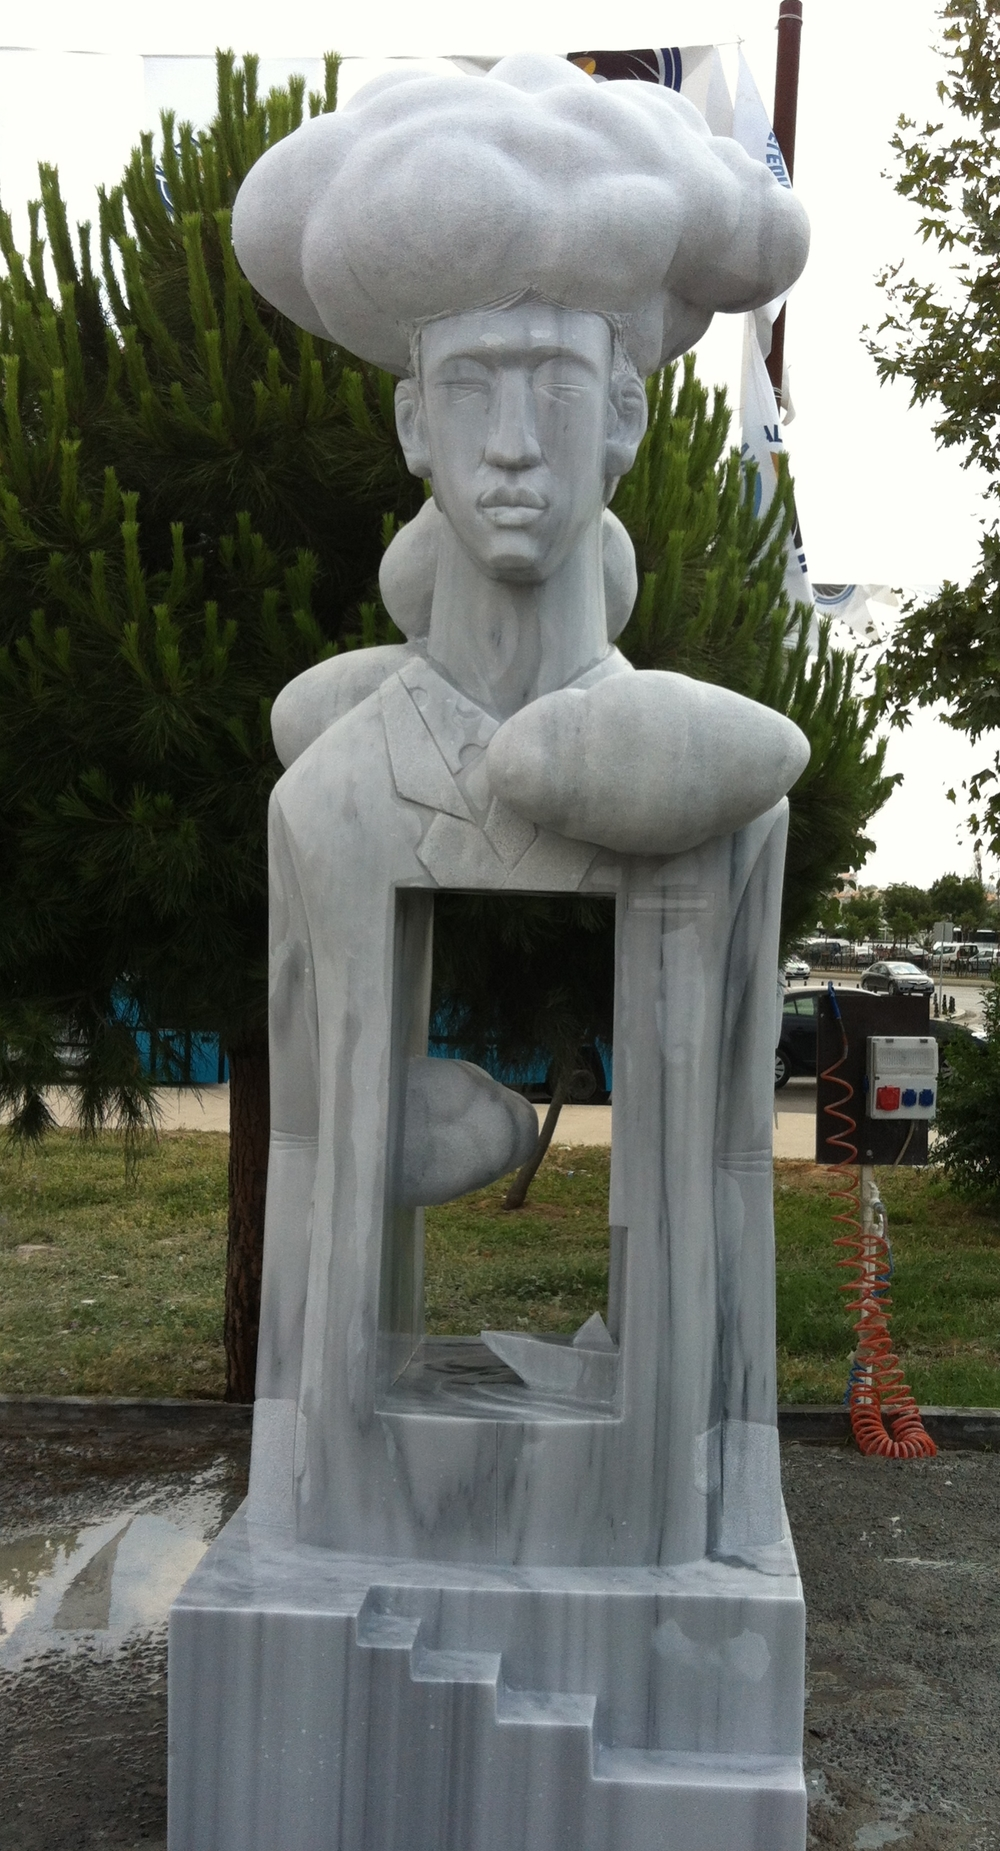 "Beautiful memories.W40""L35""H118"".Marble.2013 Kartal-Turkey"